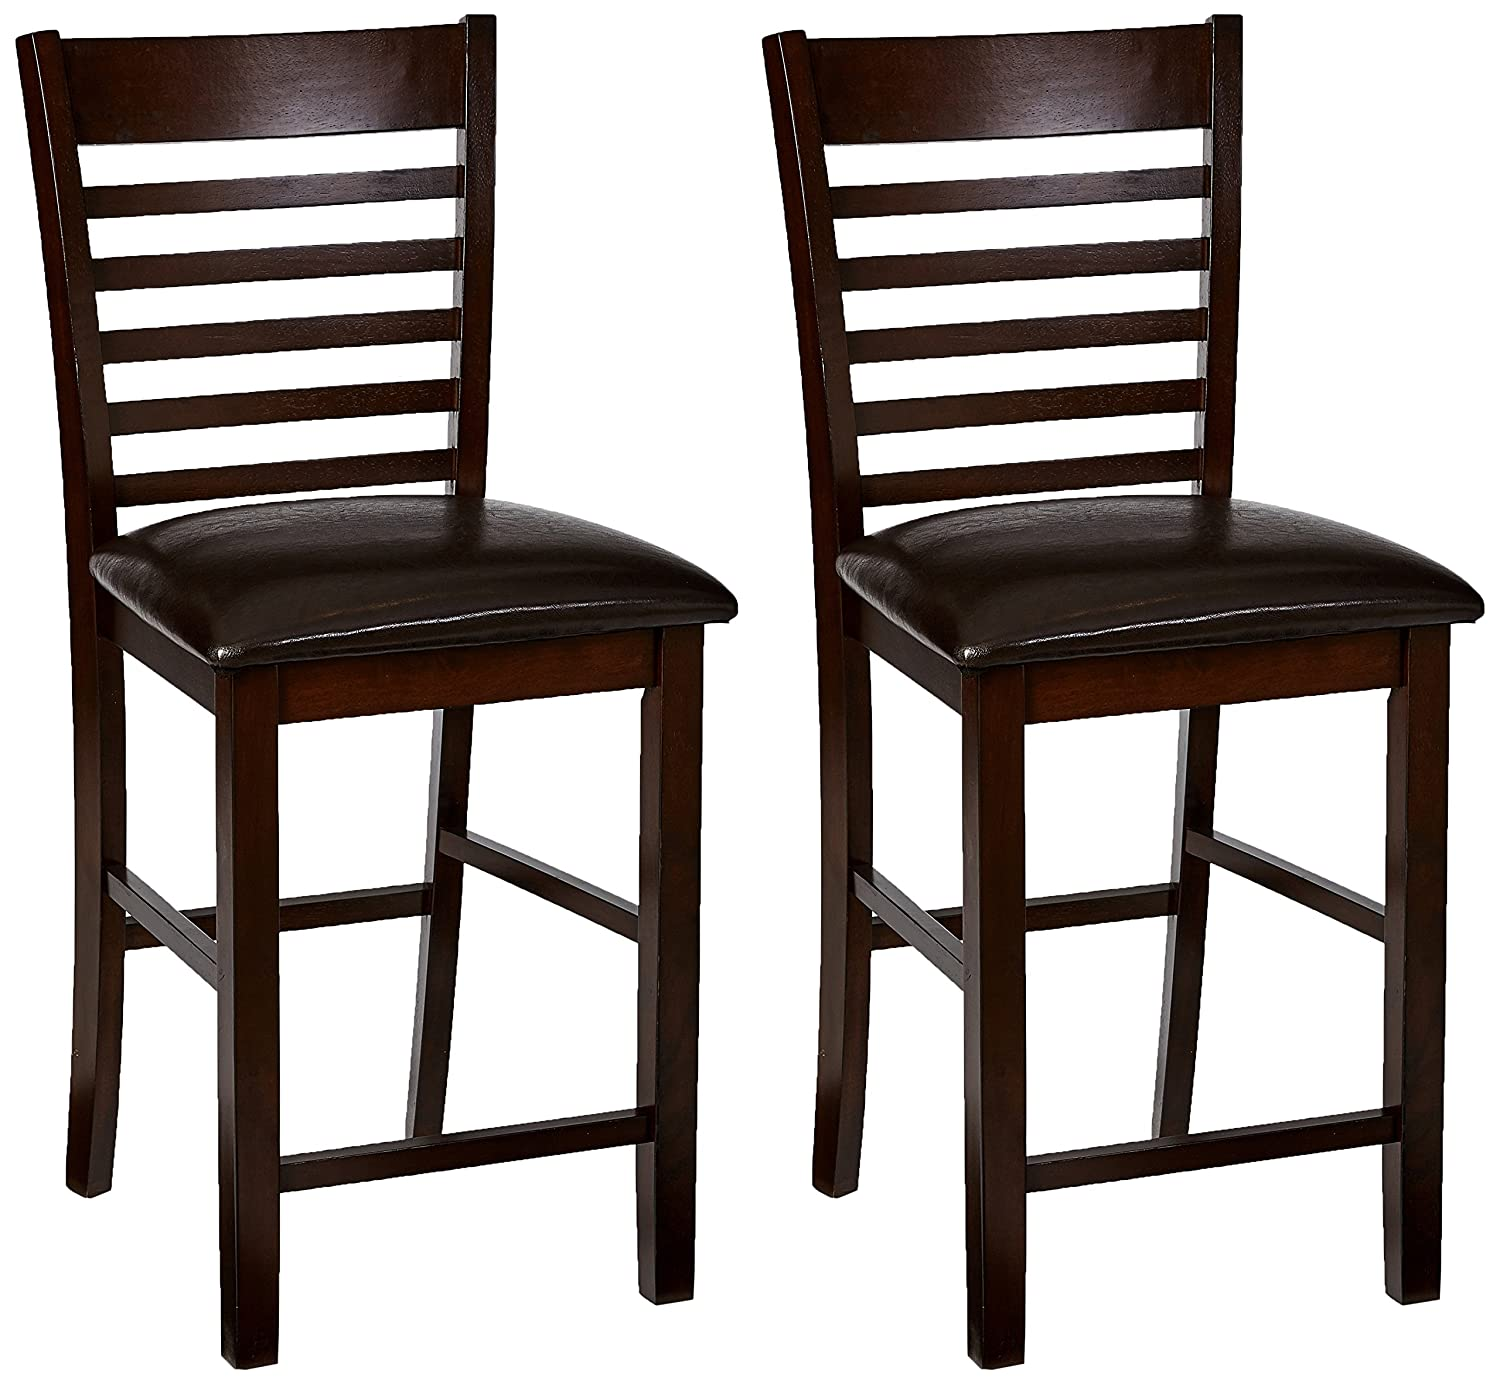 Amazon Com Simmons Casegoods Carson Chairs 2 Pack Kitchen Dining